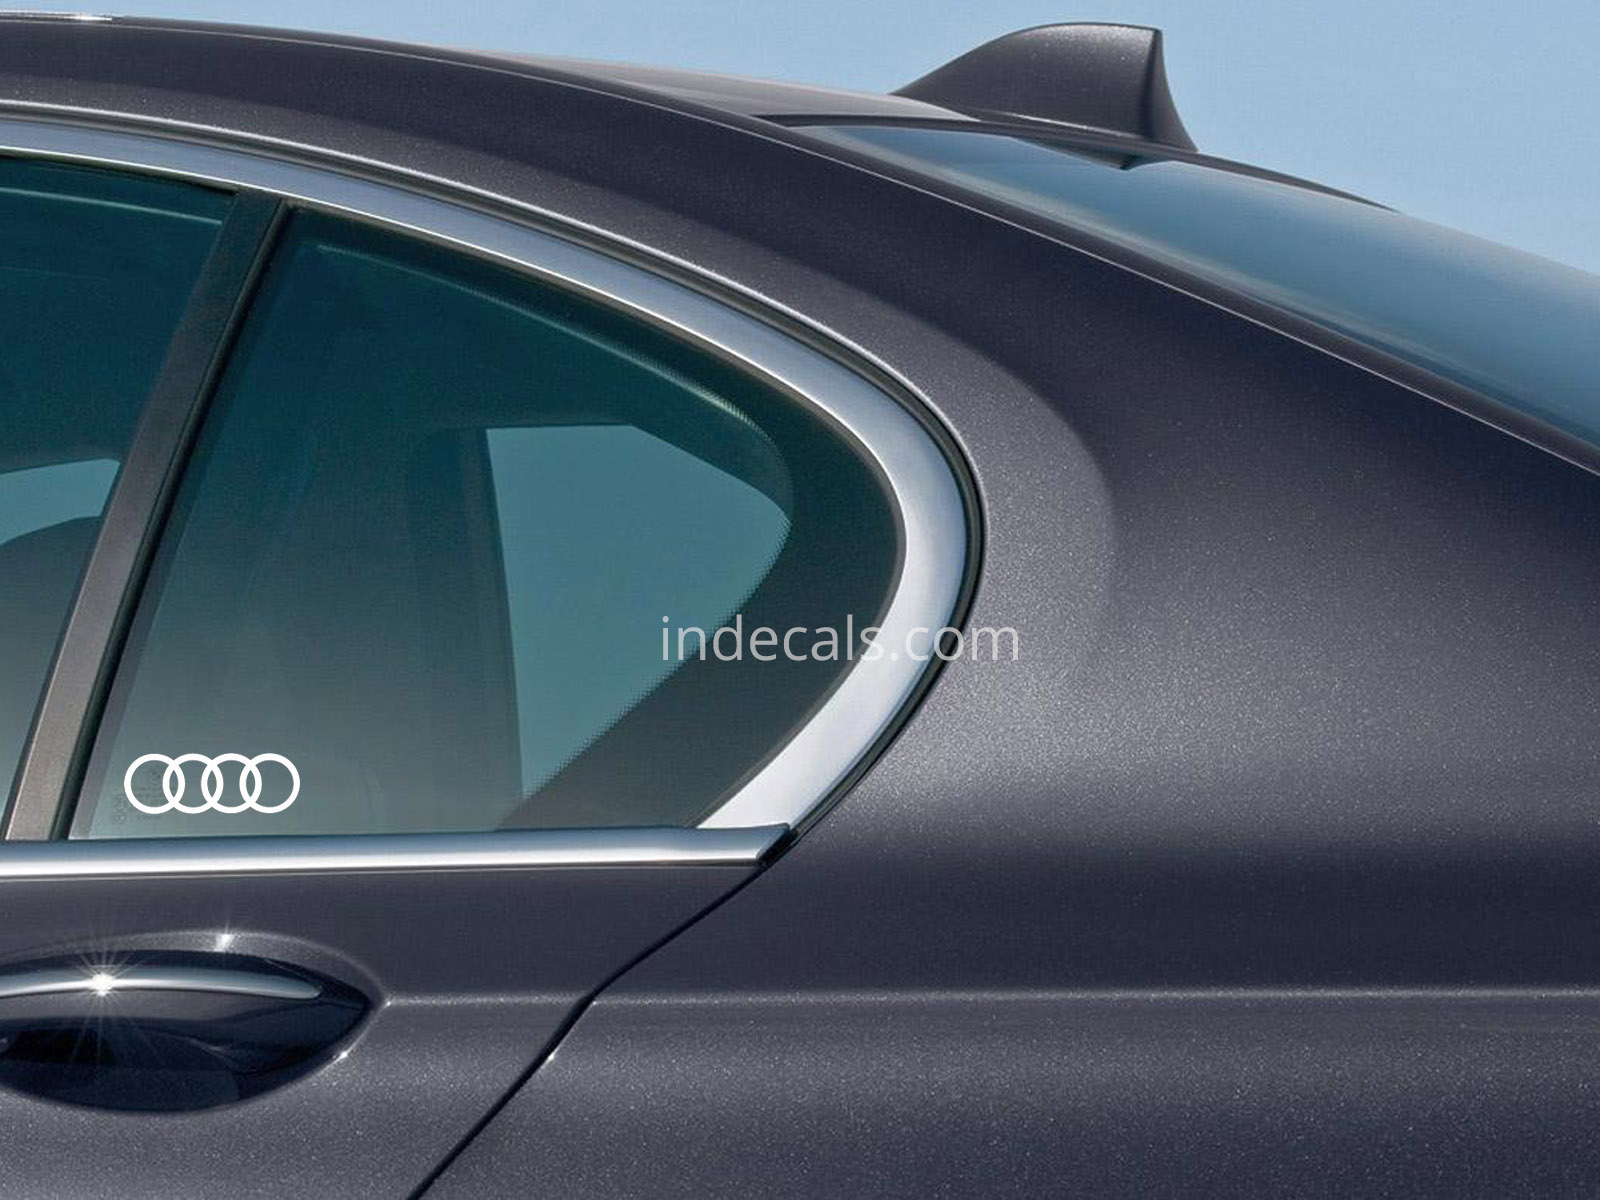 3 x Audi Rings Stickers for Rear Window - White